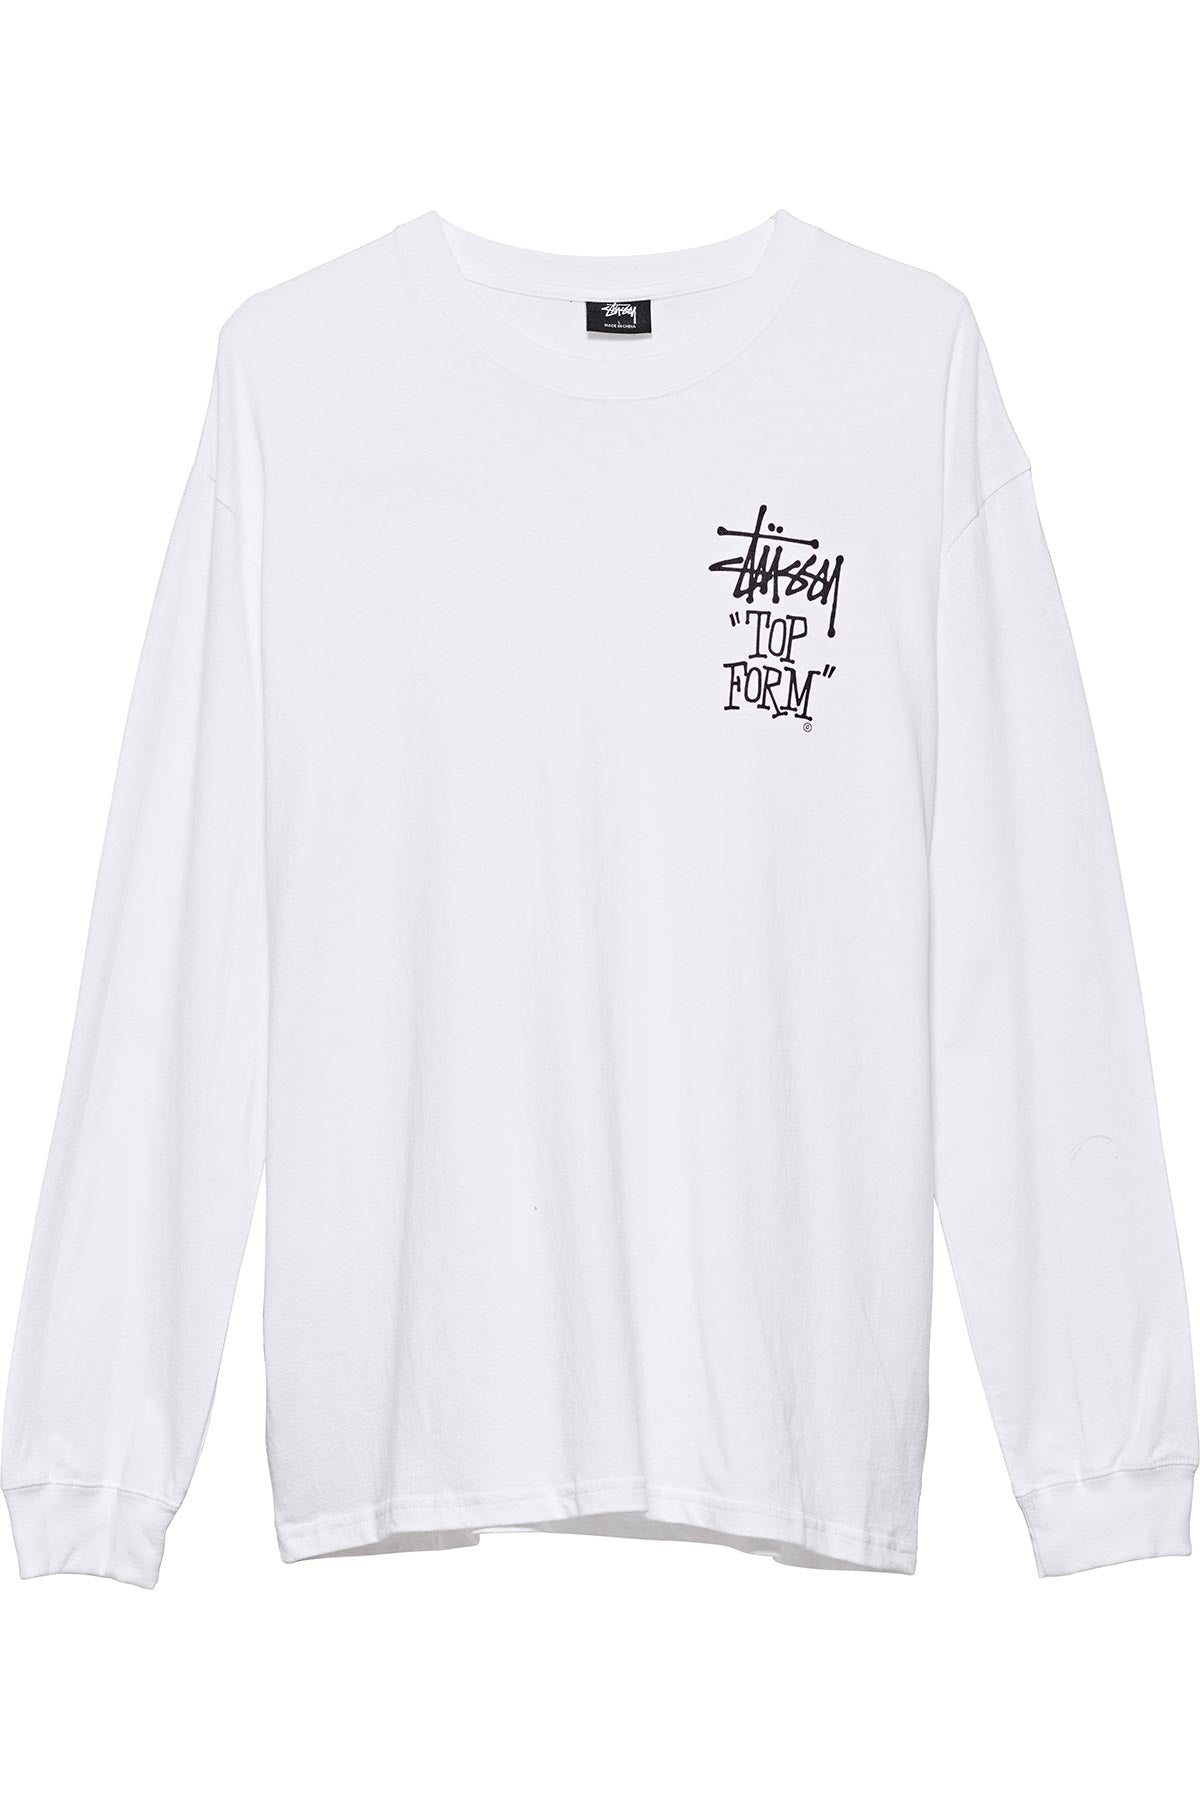 Top Form LS Tee - R8gzwear